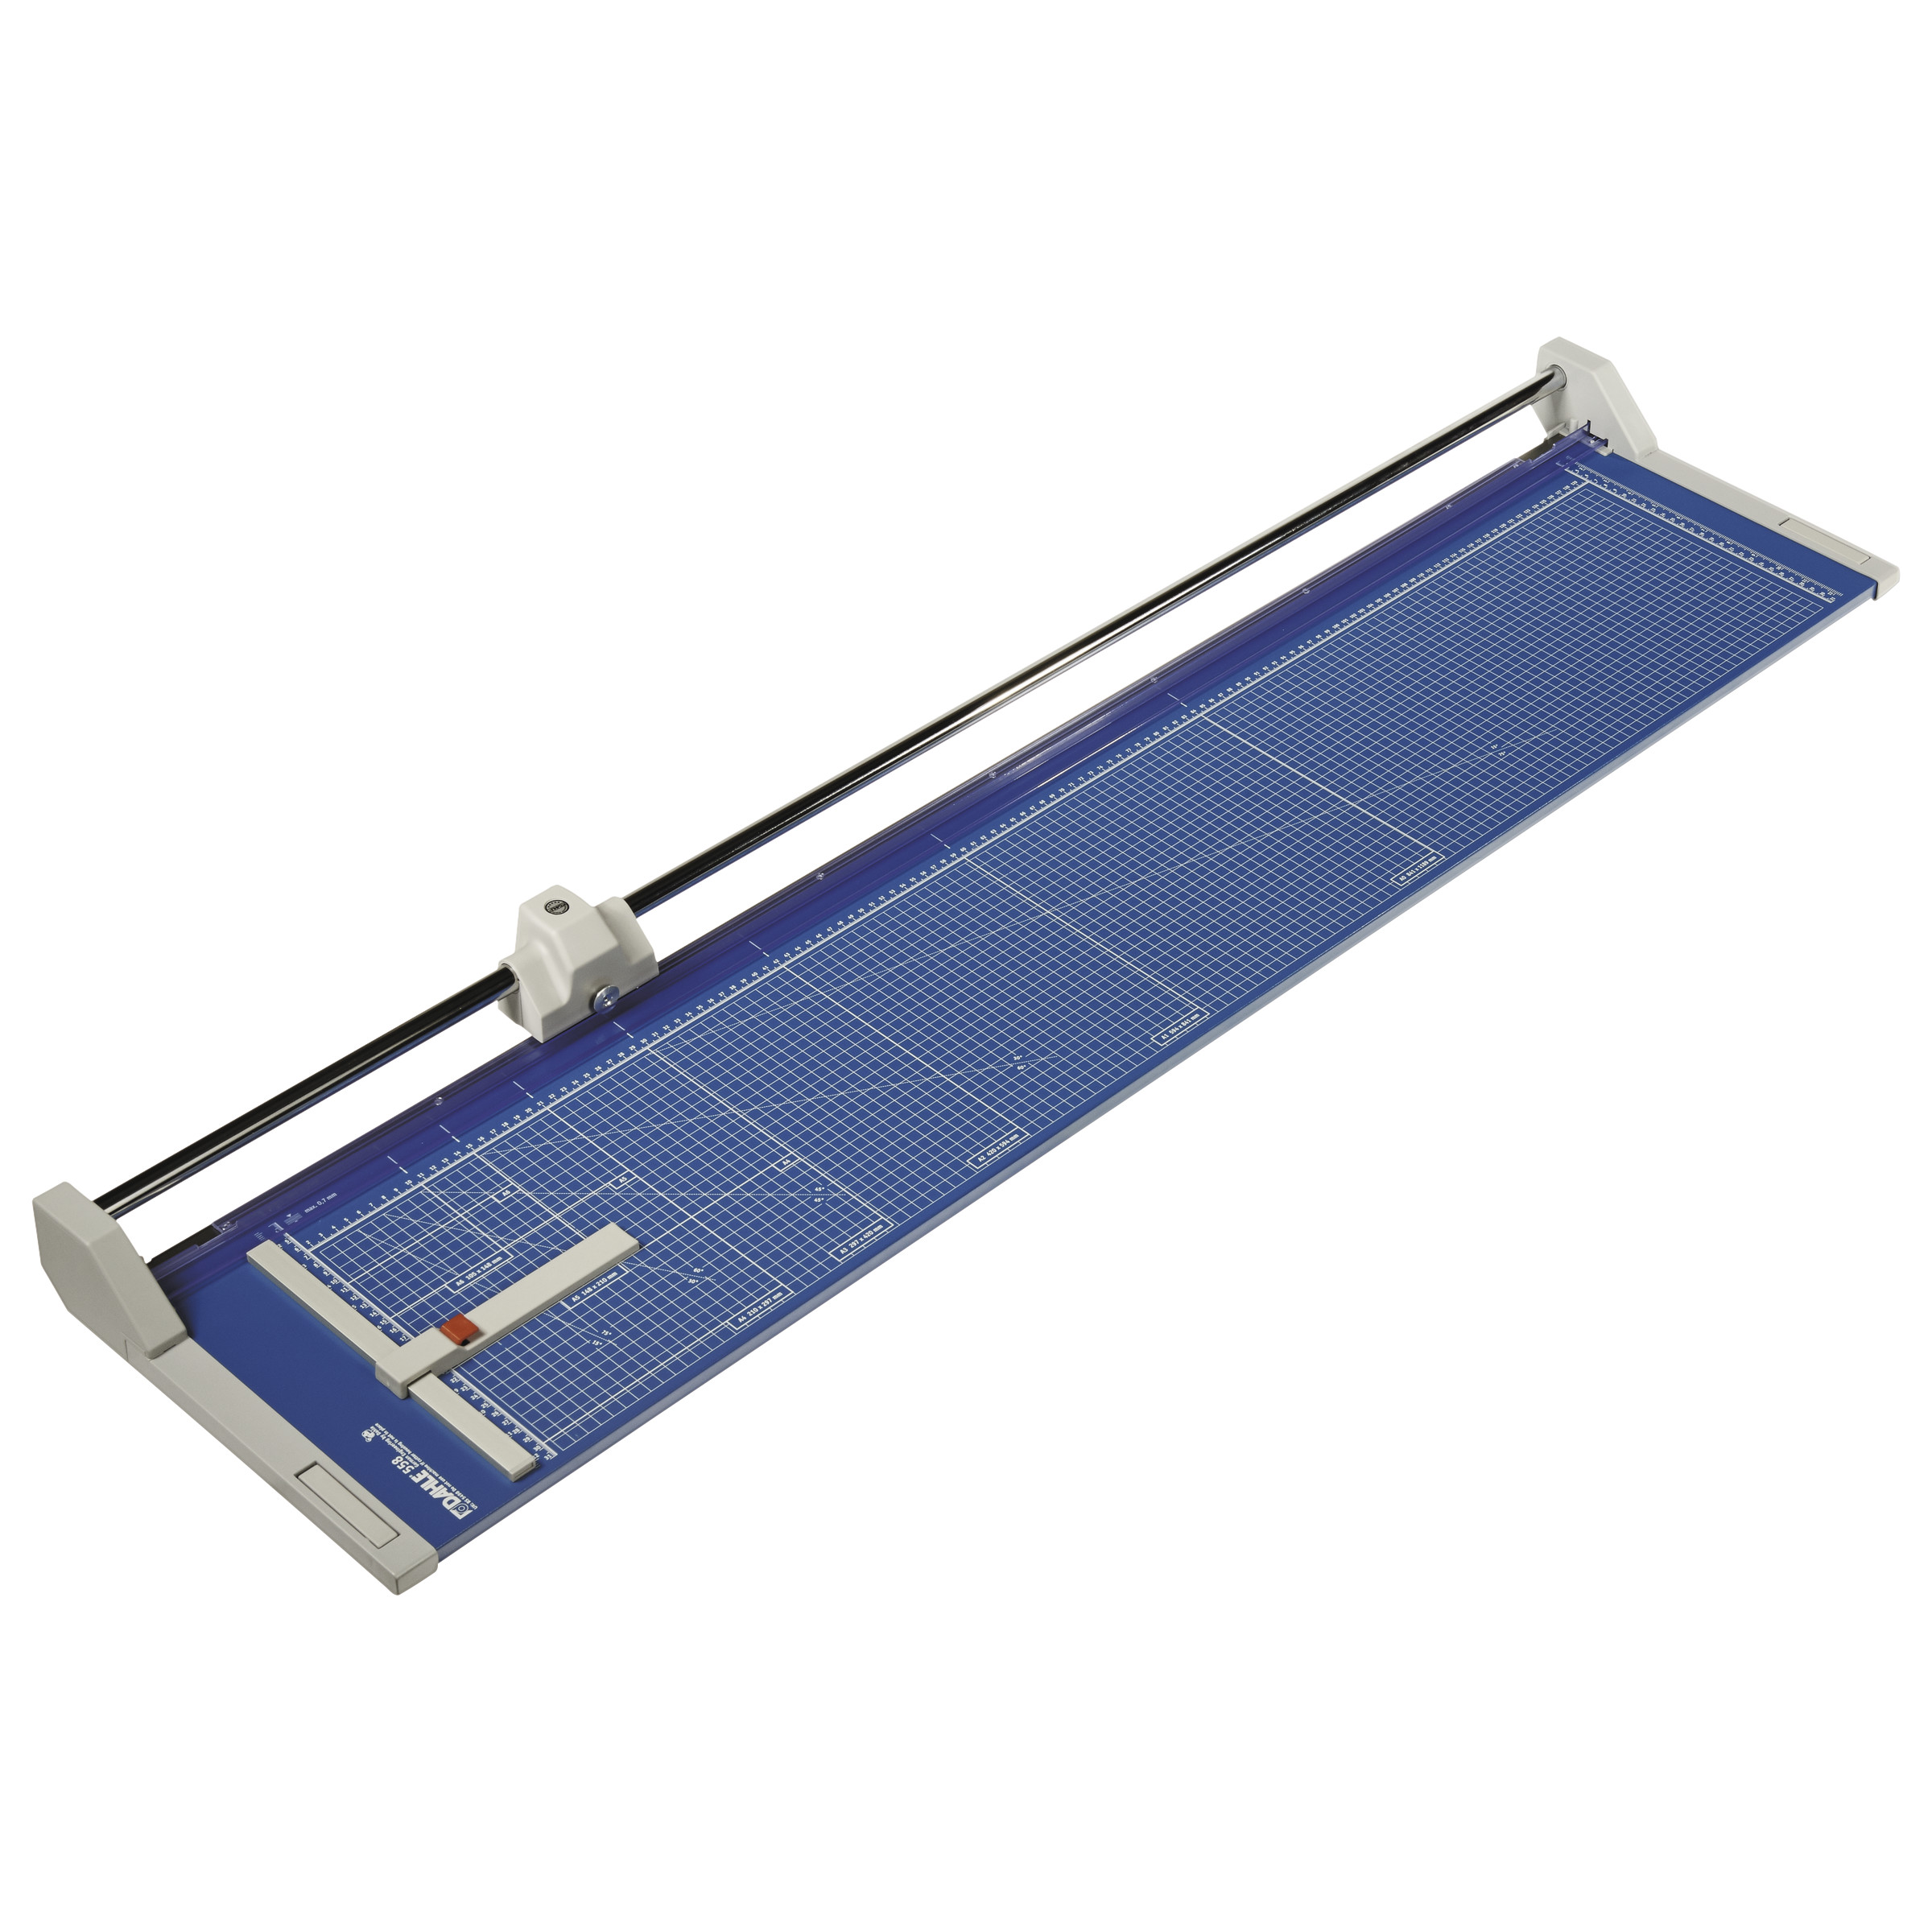 "Dahle 51"" Professional Trimmer"